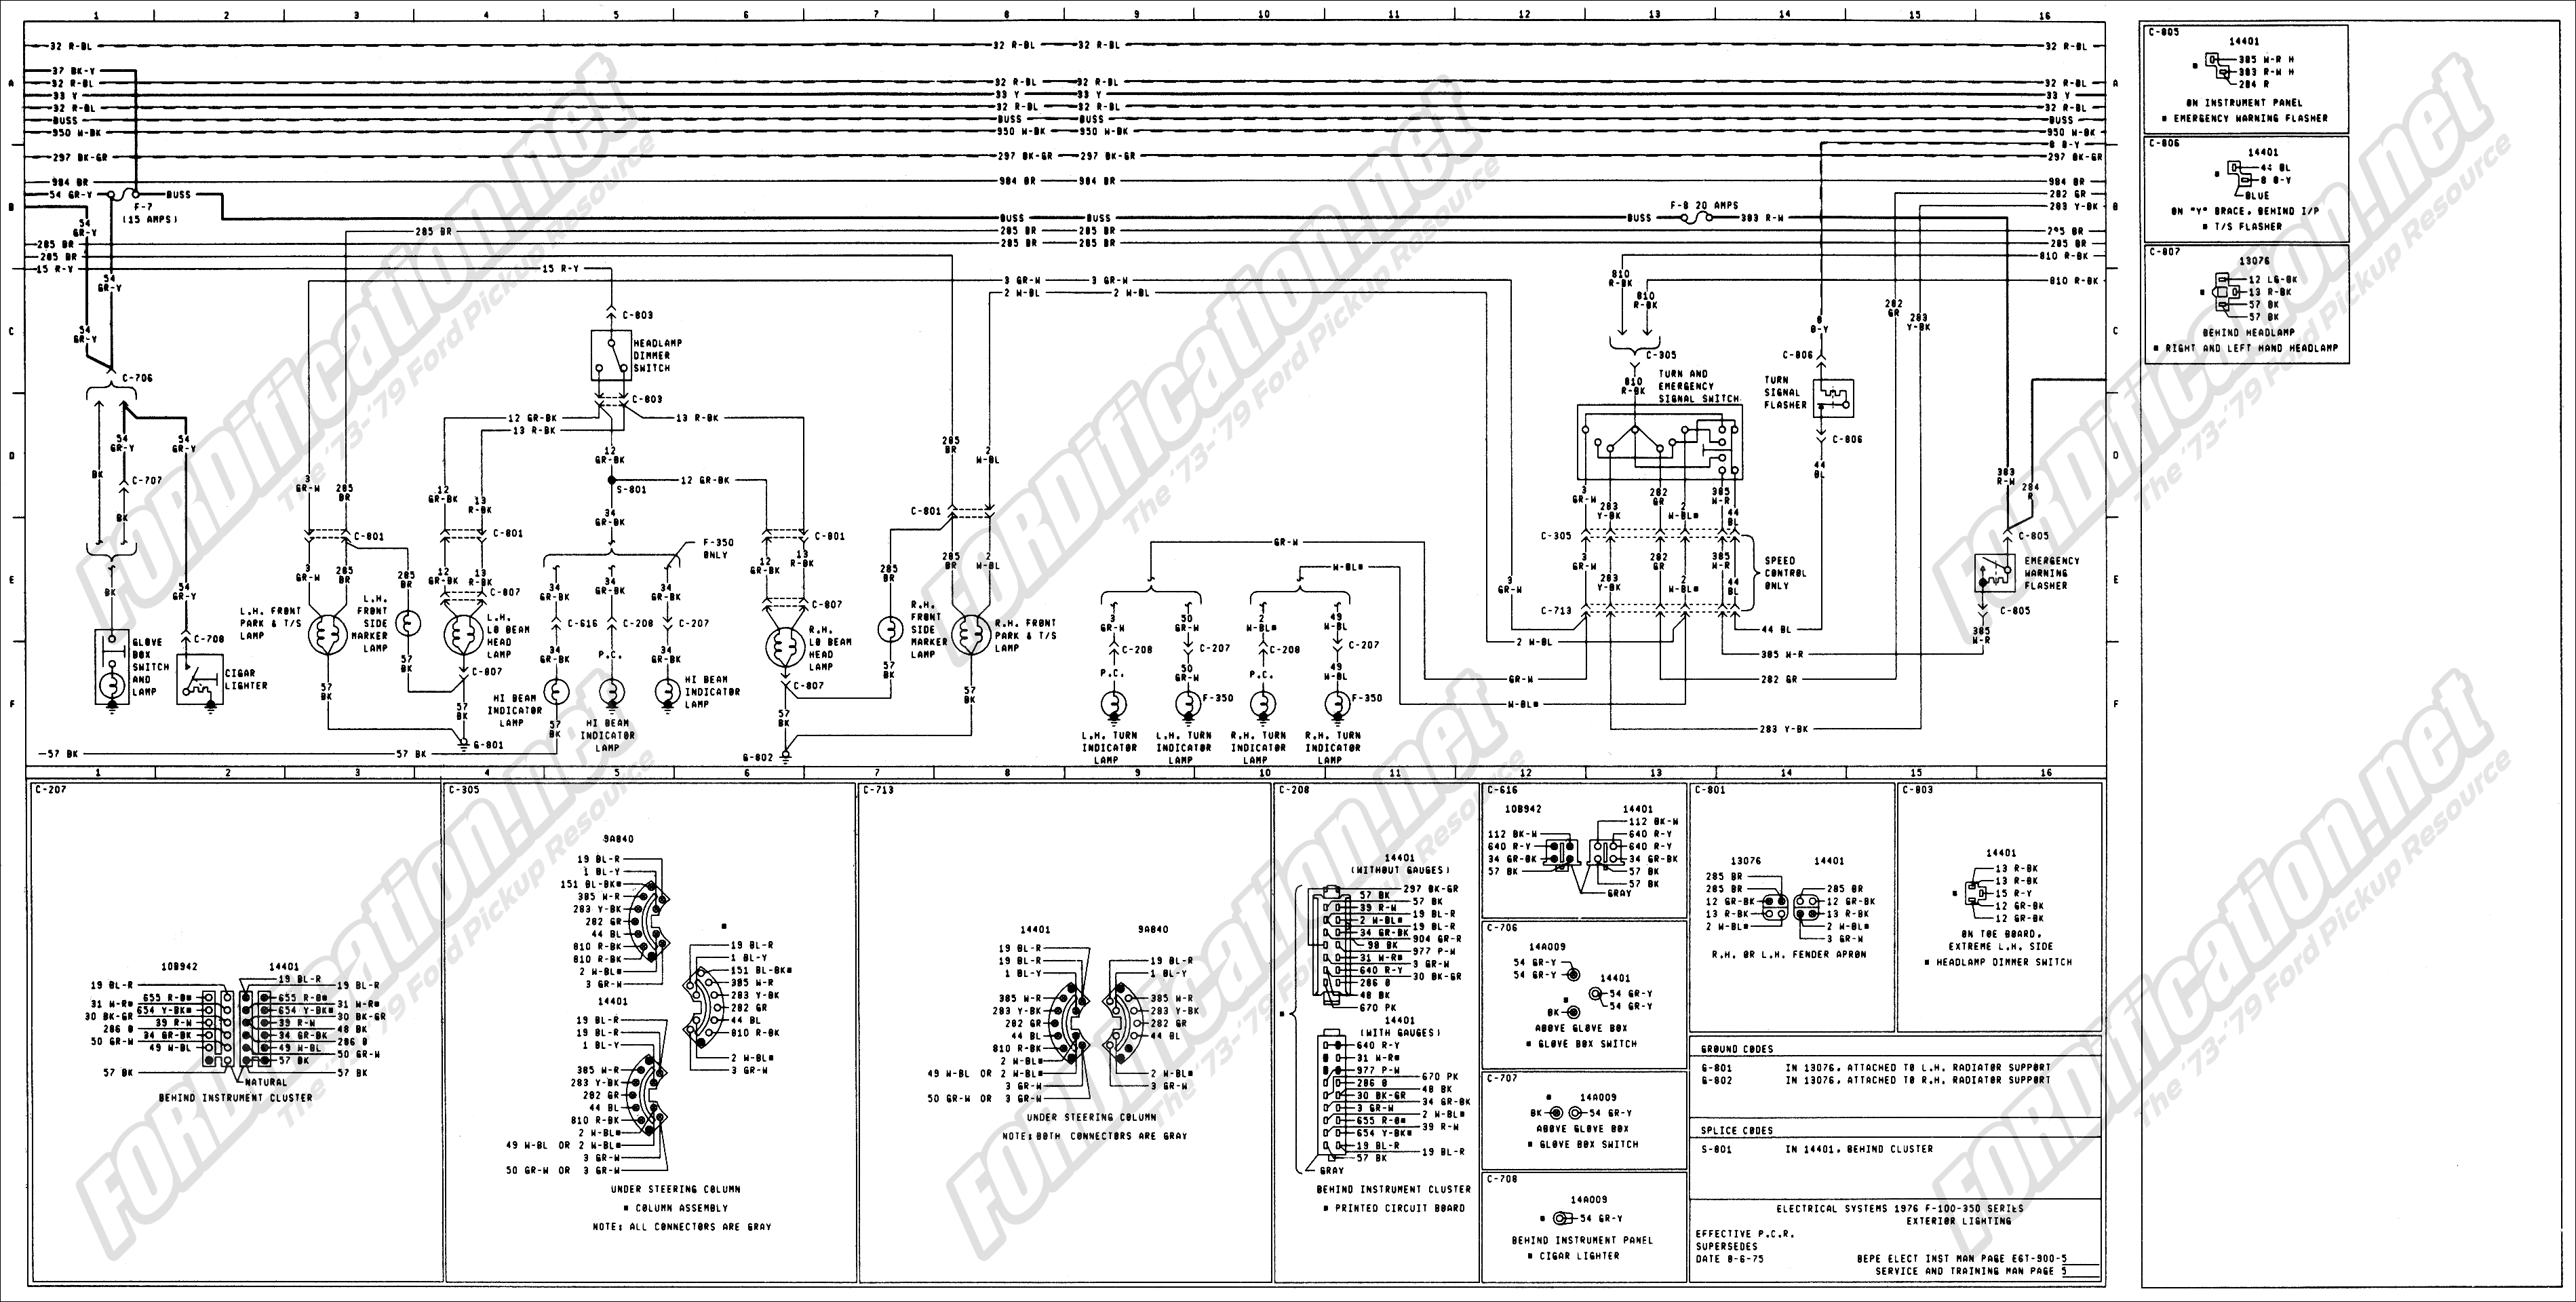 wiring_76master_5of9 1973 1979 ford truck wiring diagrams & schematics fordification net wiring diagrams for 2017 ford trucks at webbmarketing.co